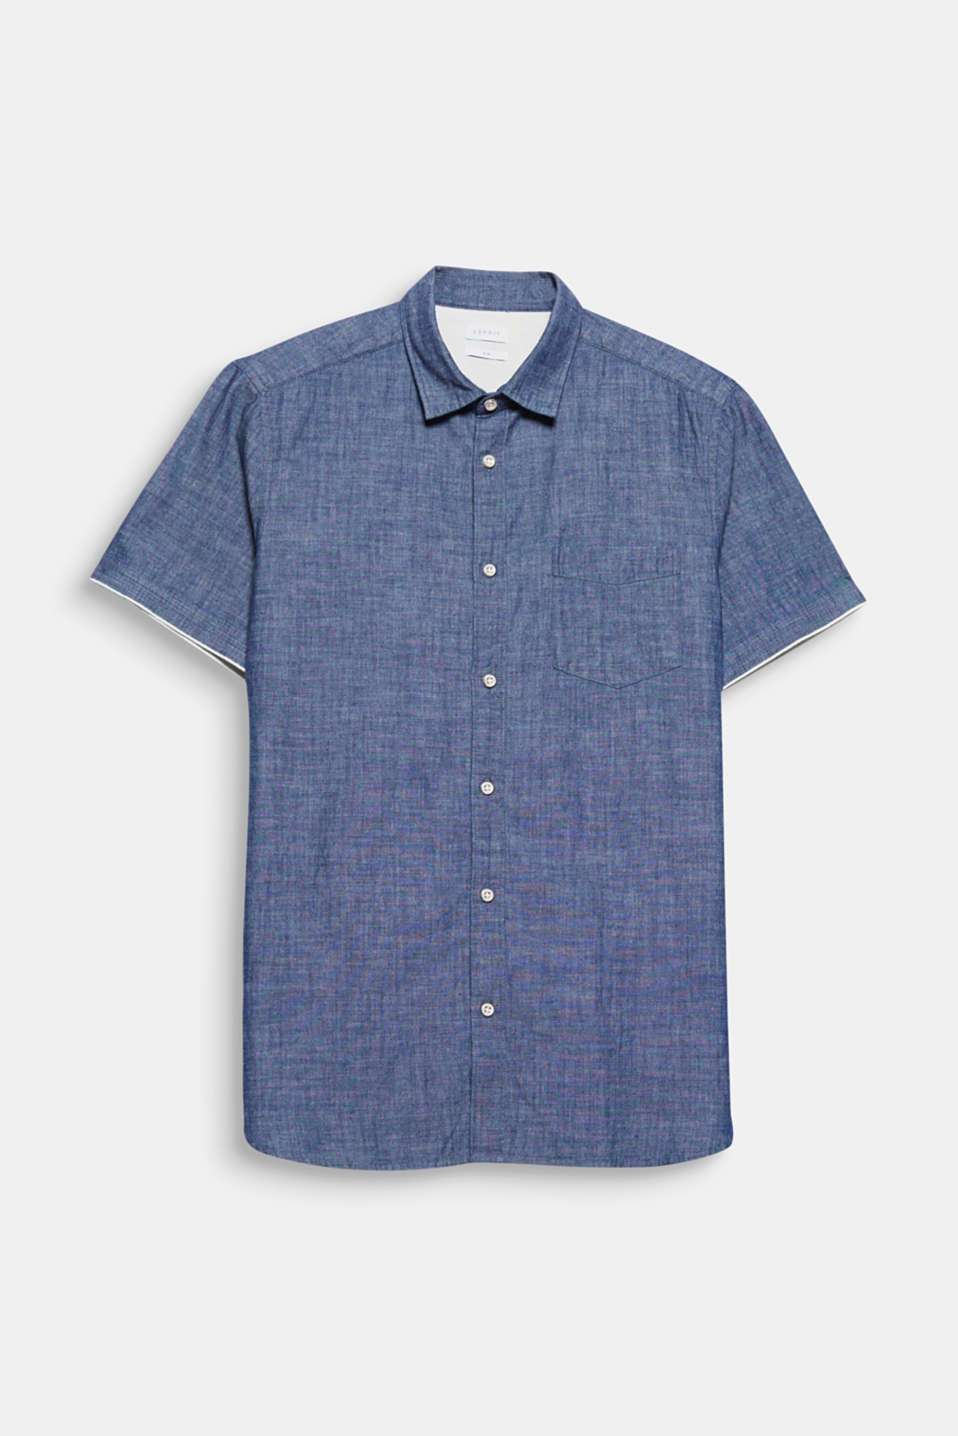 The cool, melange chambray fabric gives this short sleeve shirt a summery look.